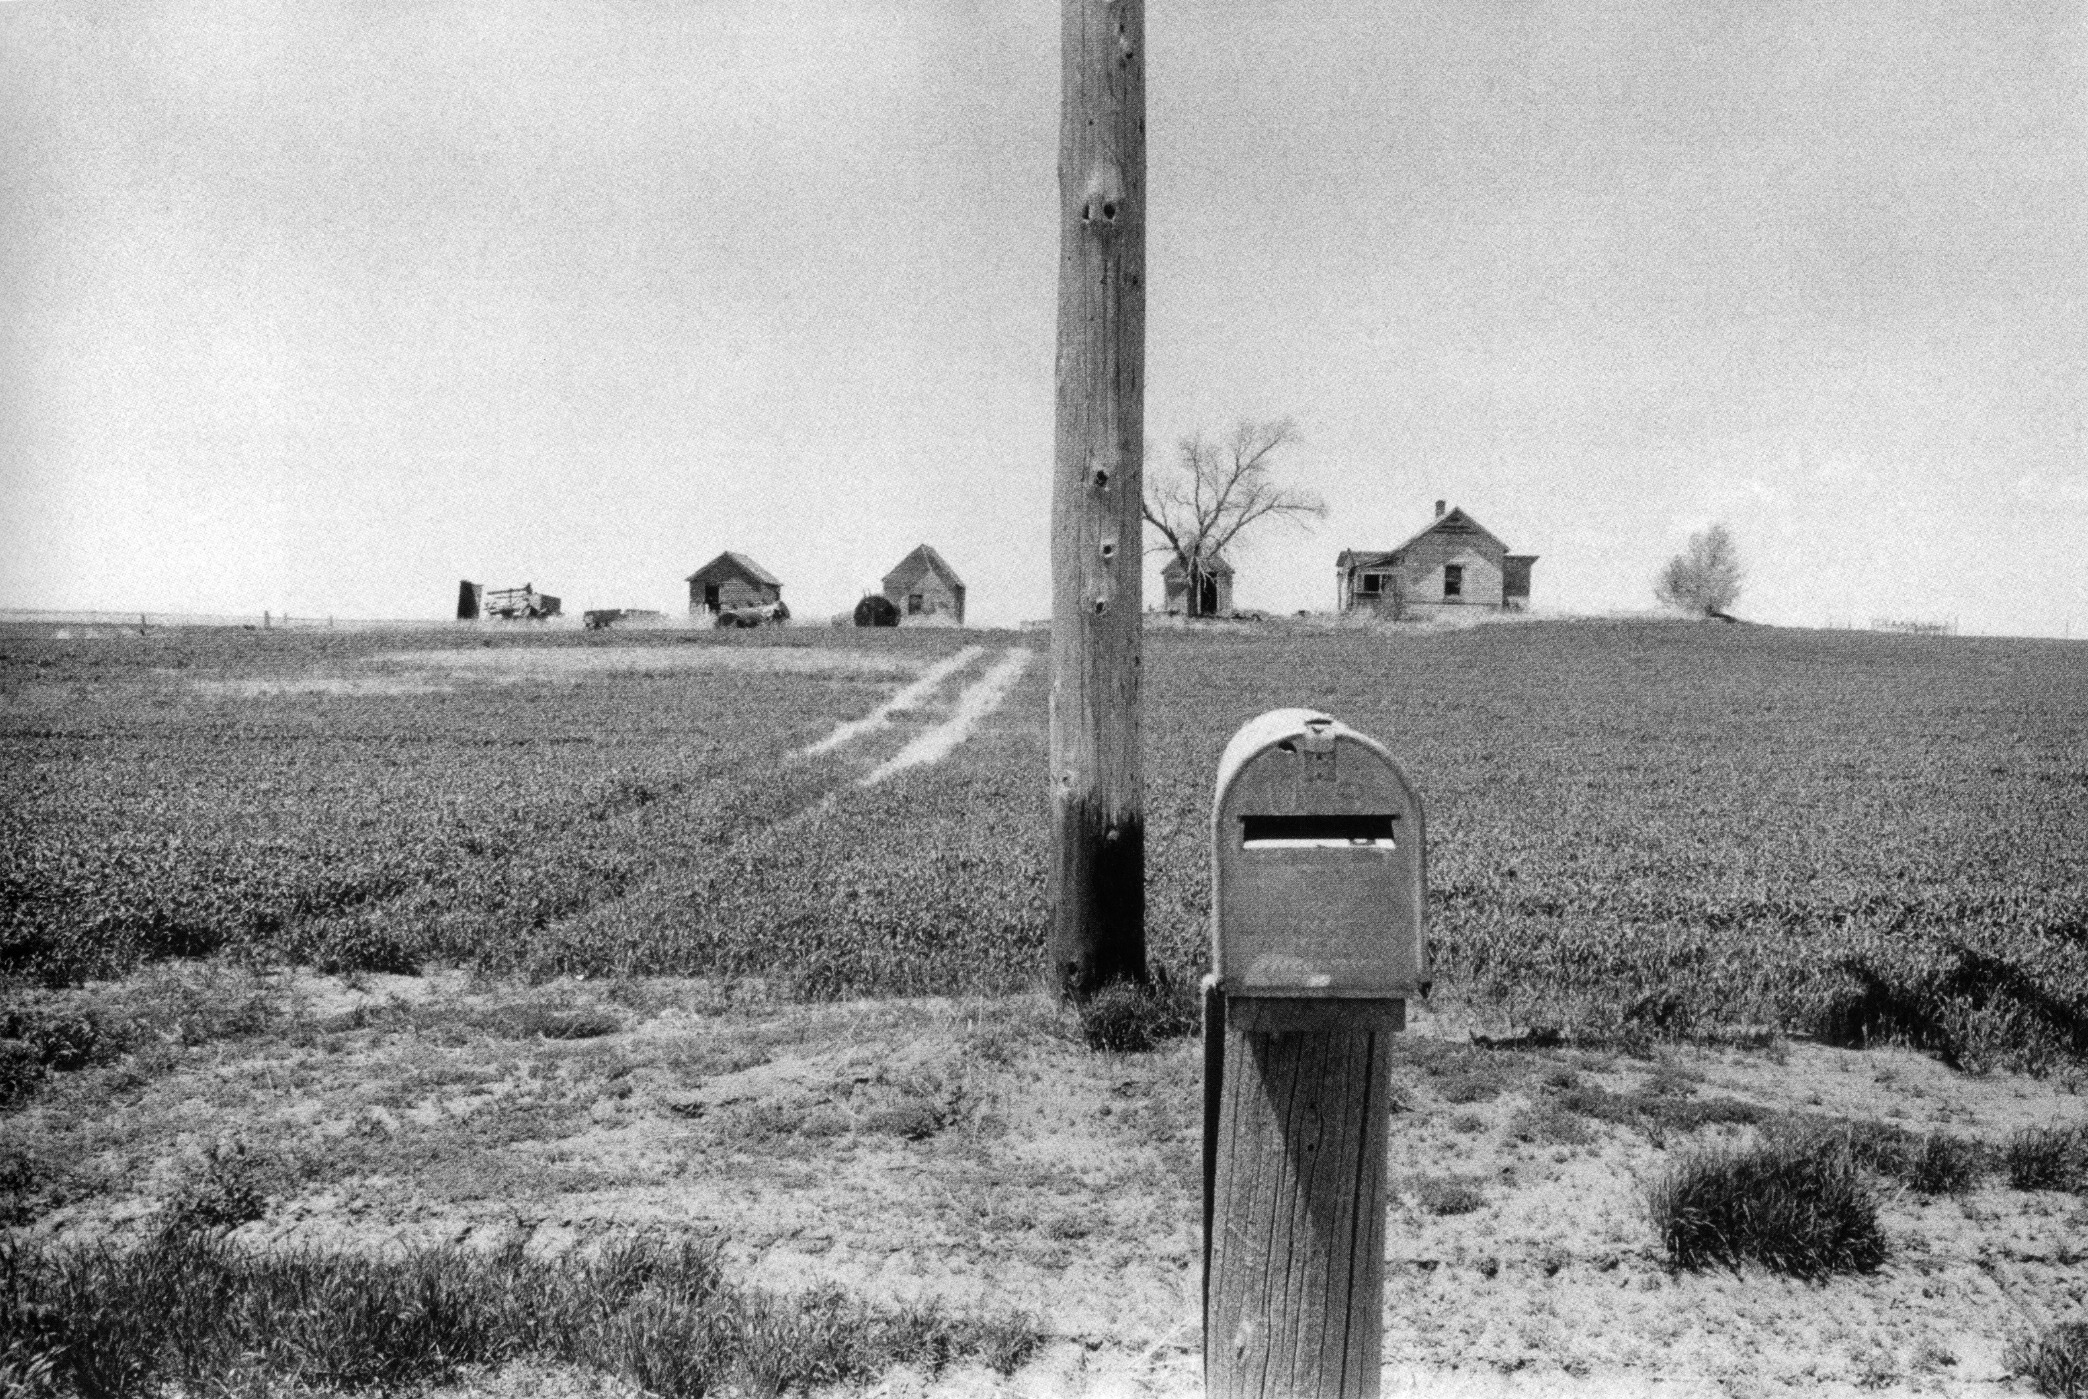 30. U.S. 30 between Ogallala and North Platte, Nebraska 1956